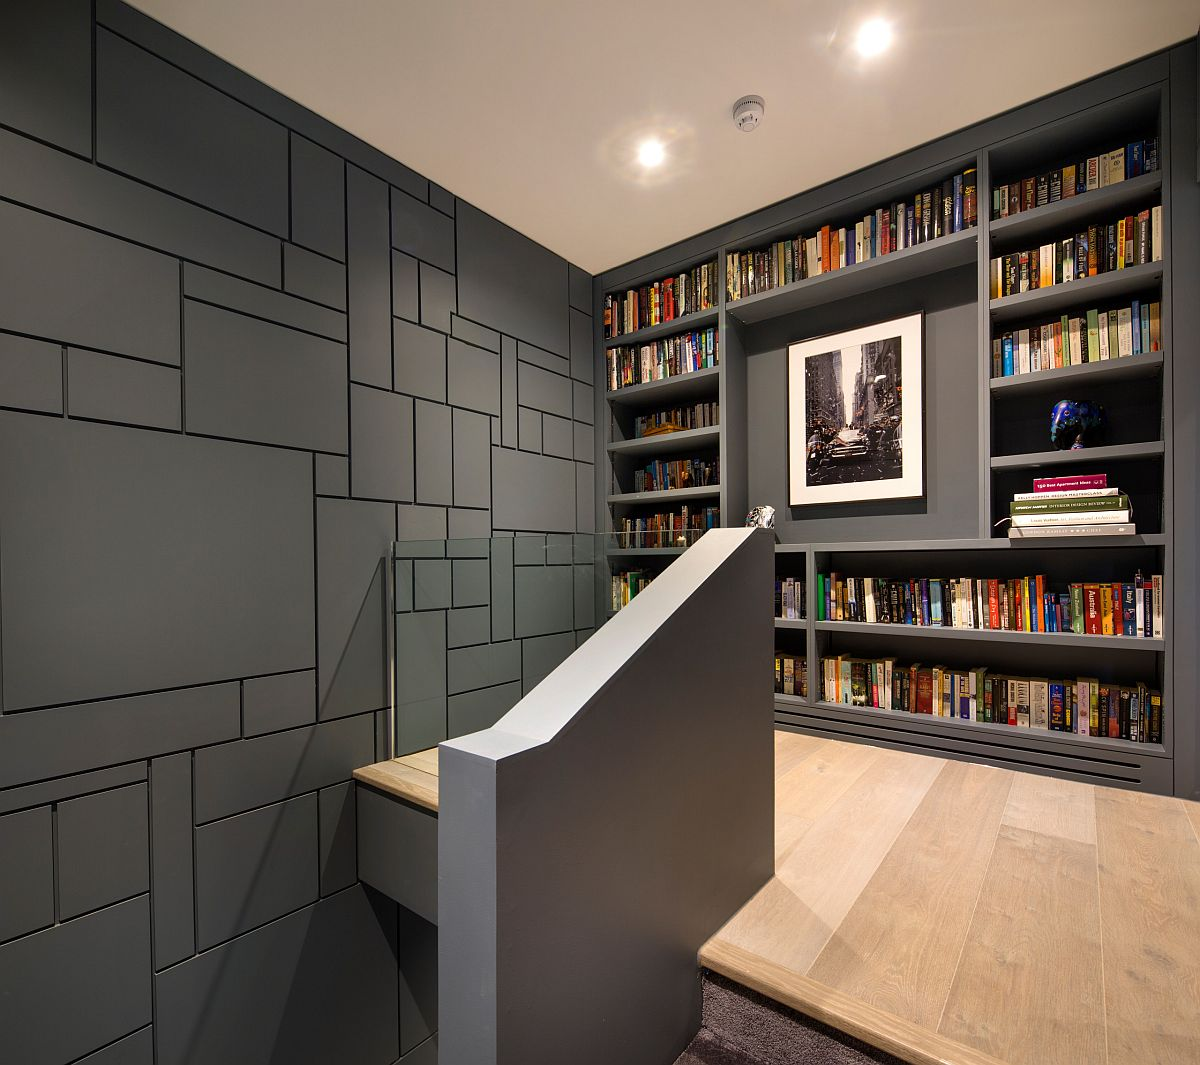 Gorgeous gray walls add to the sophisticated style of this modern bookshelf